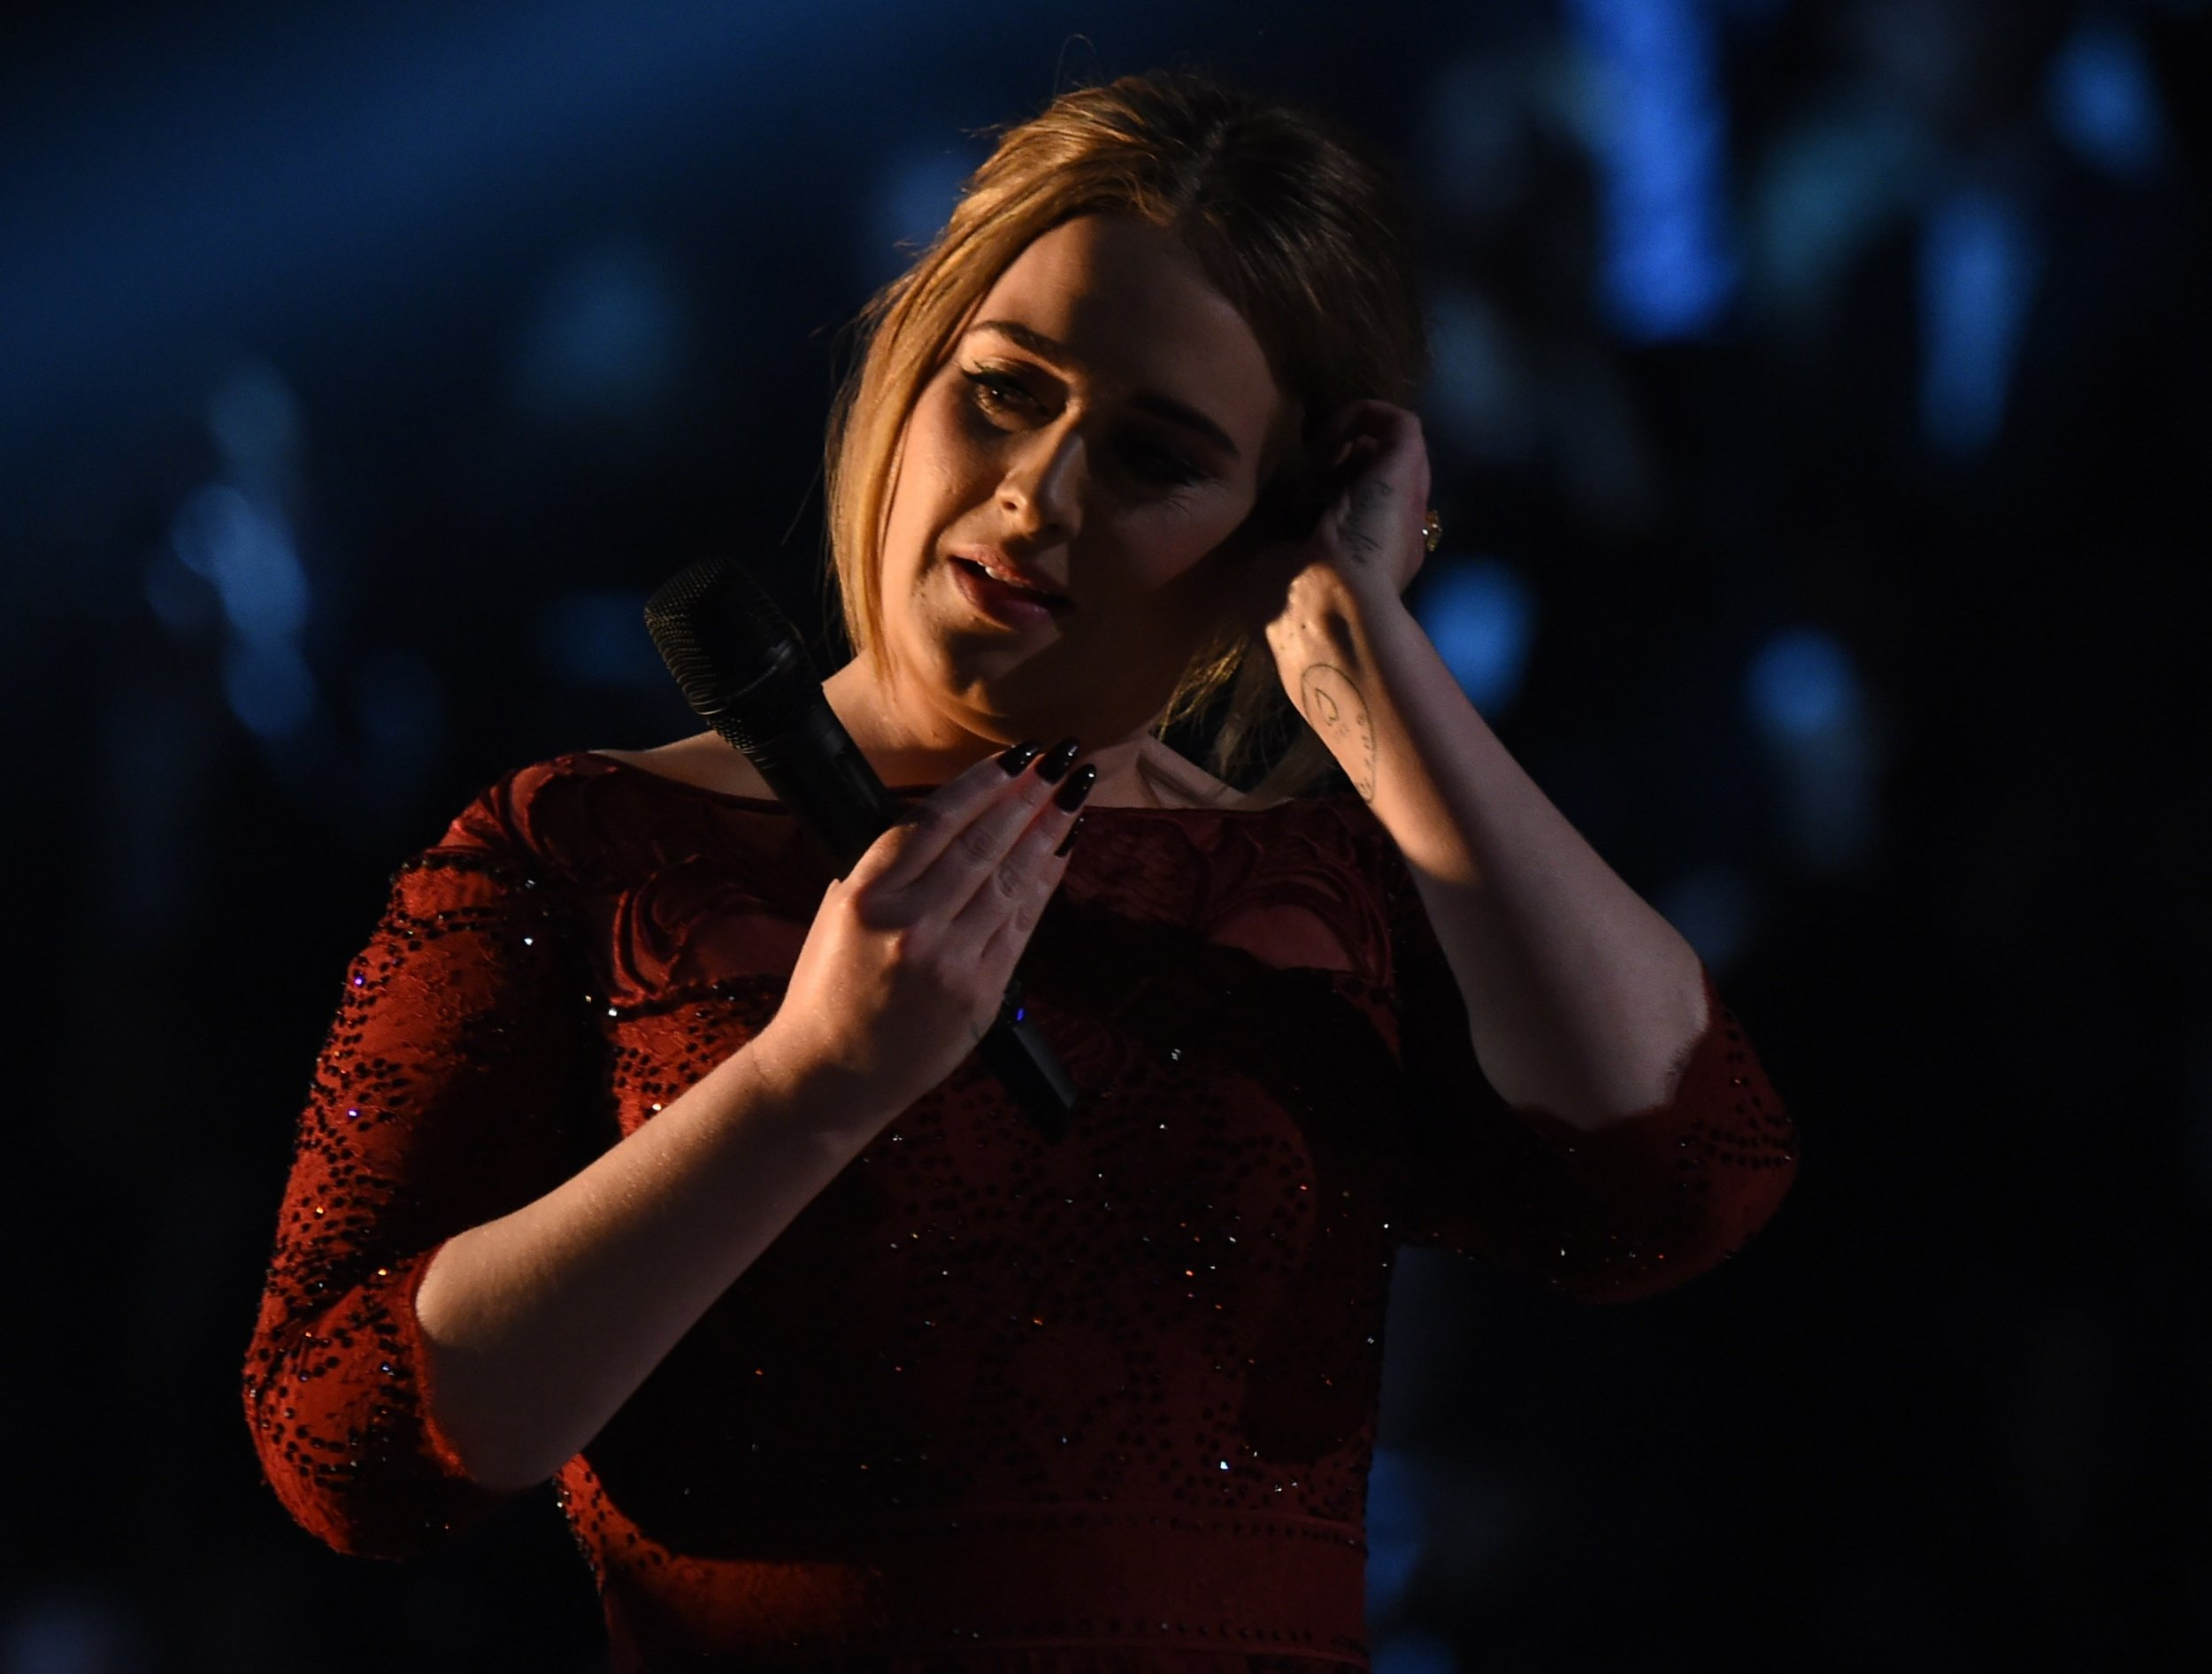 The Grammys: Adele explains what went wrong during her performance of All I Ask